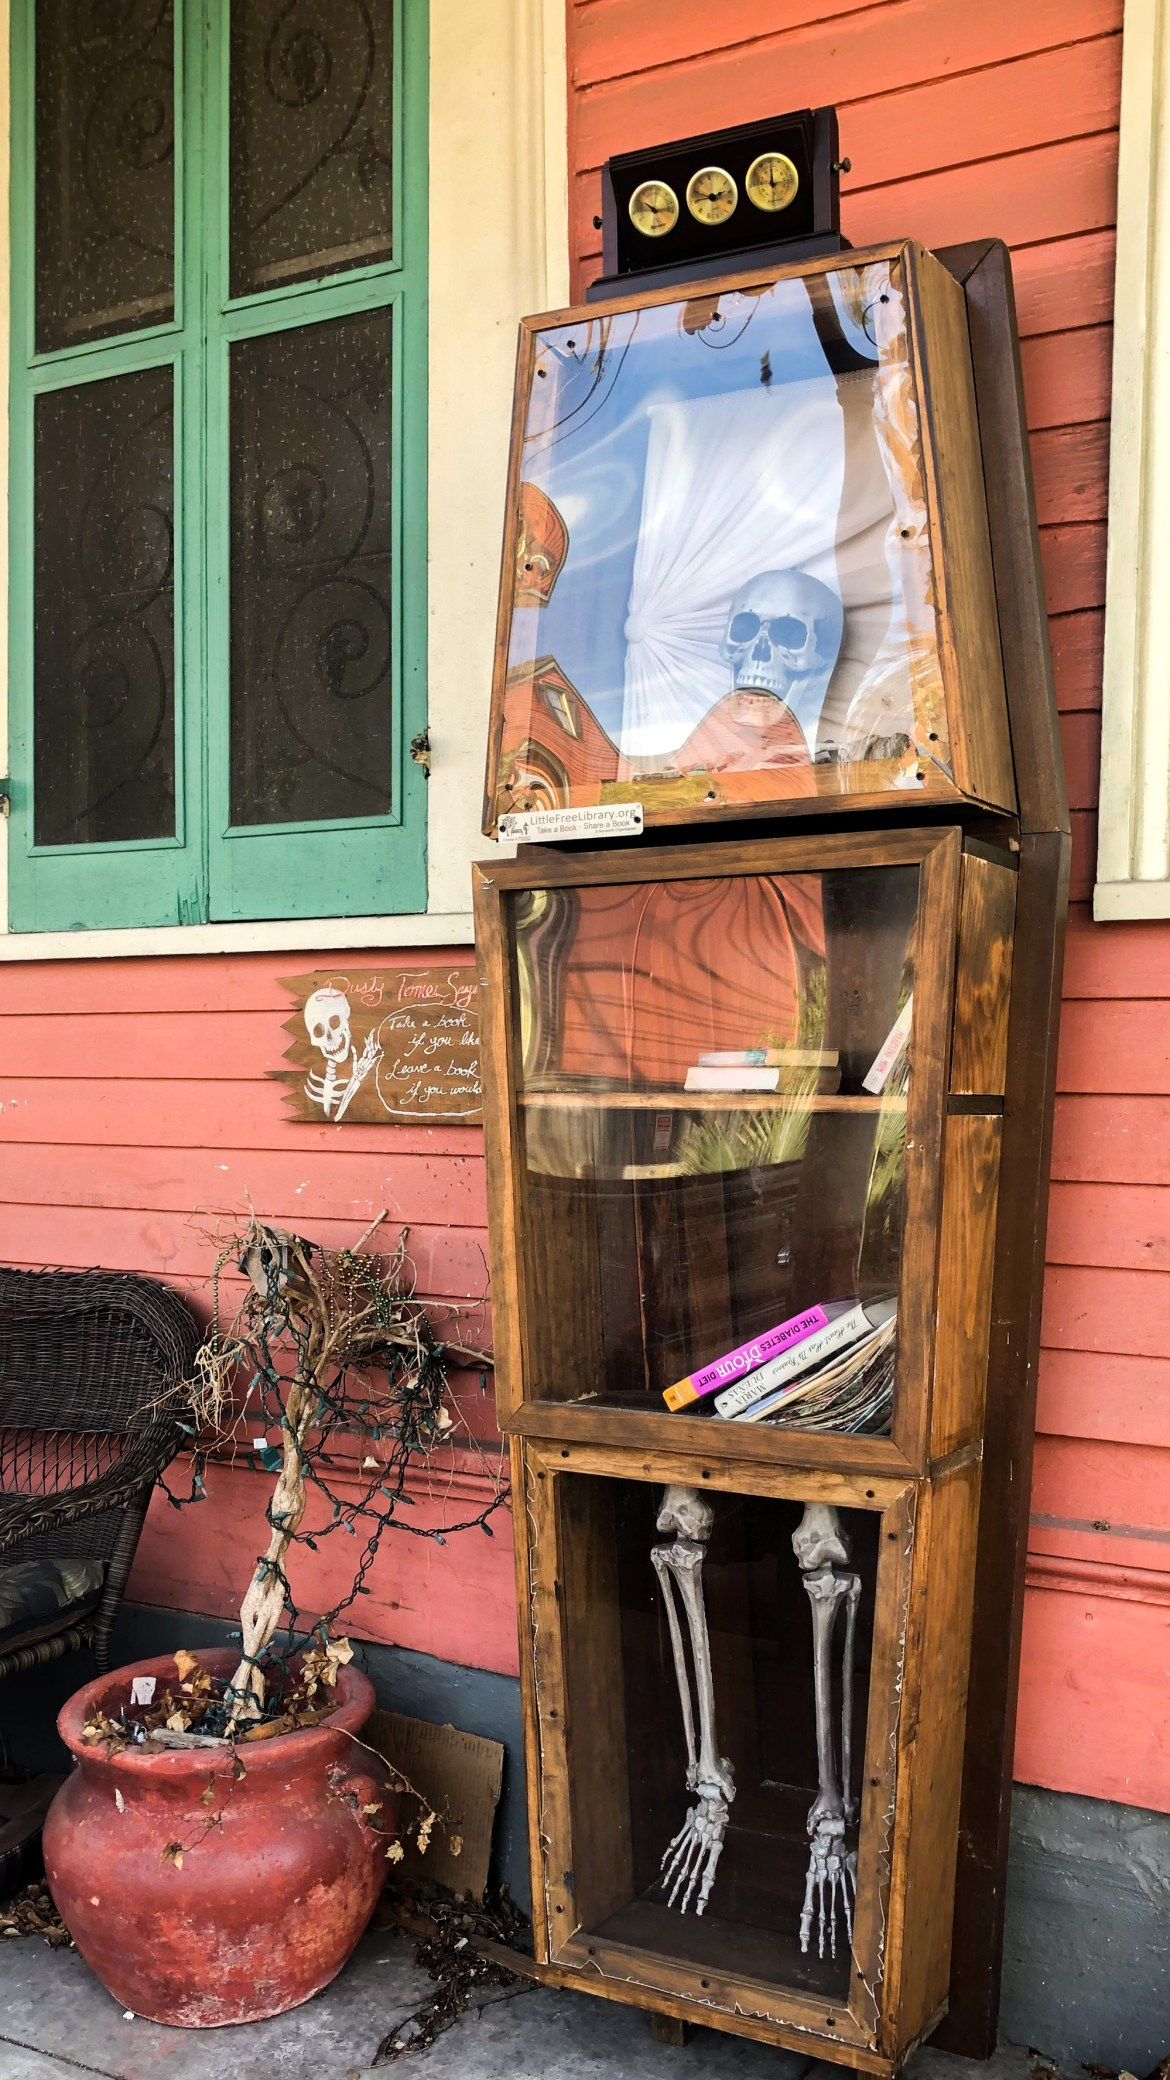 #Bywater #nola #lendinglibrary